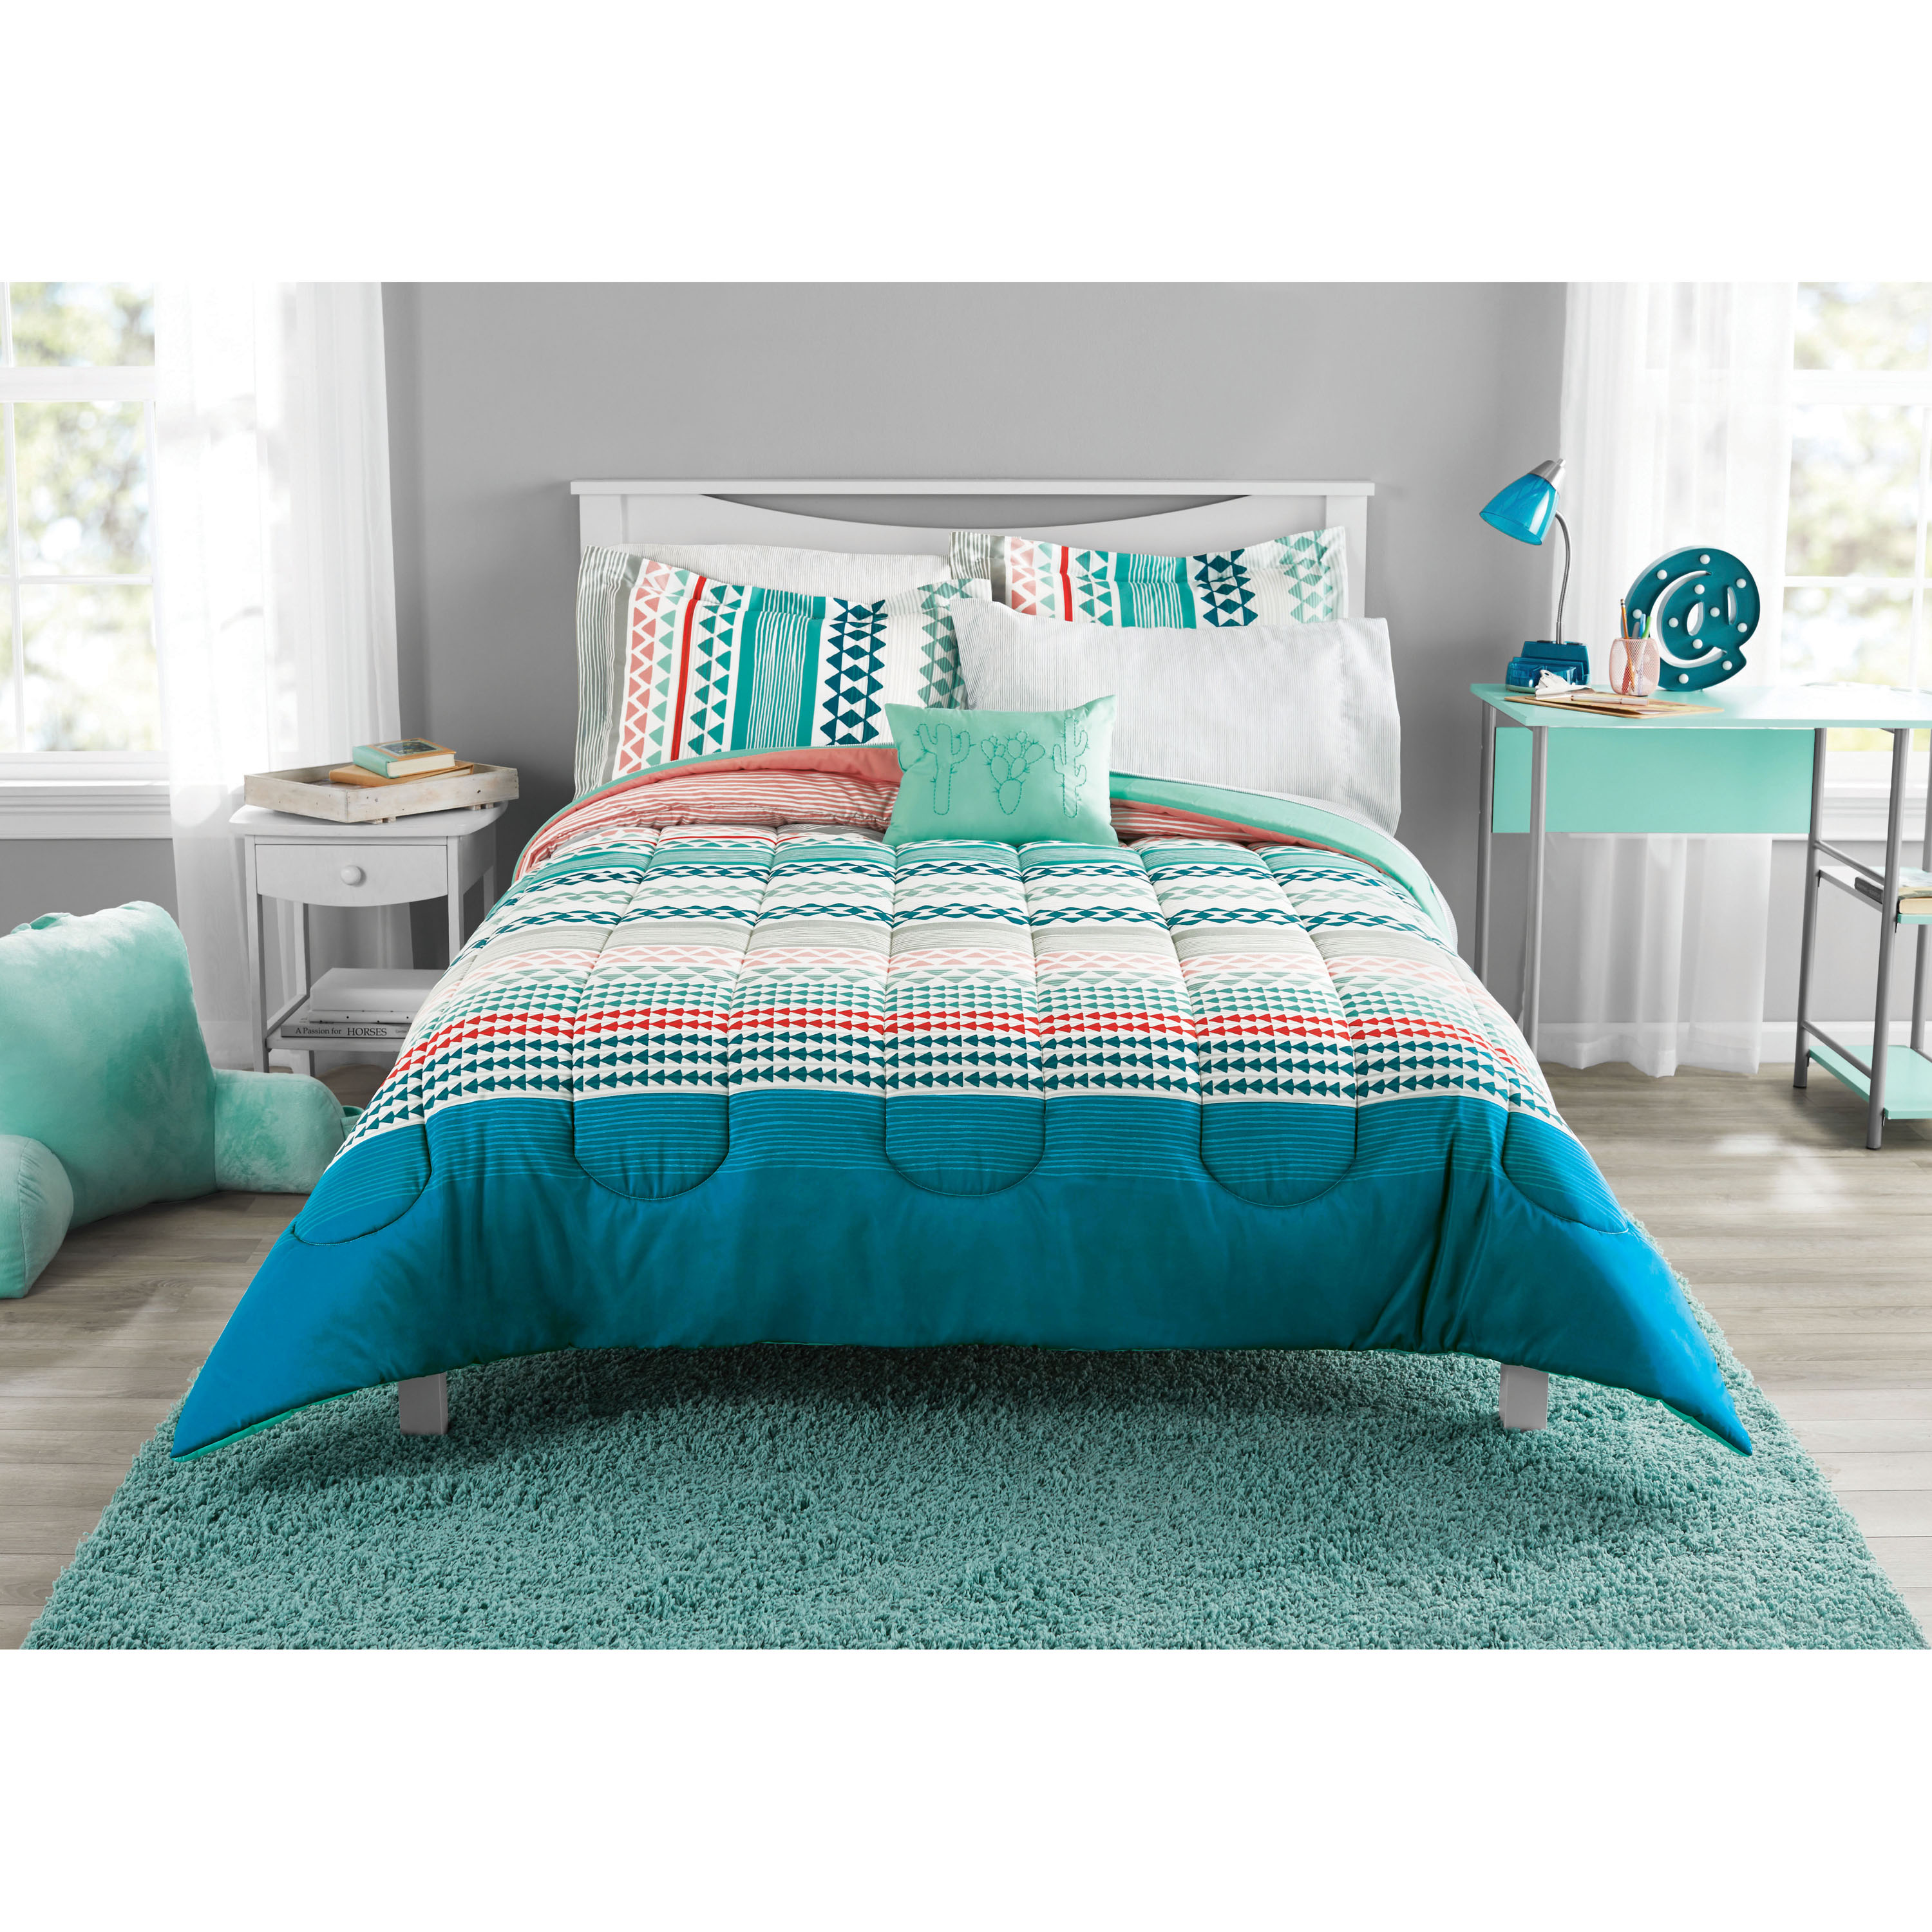 Mainstays Multi Geo Bed in a Bag Coordinating Bedding Set, King